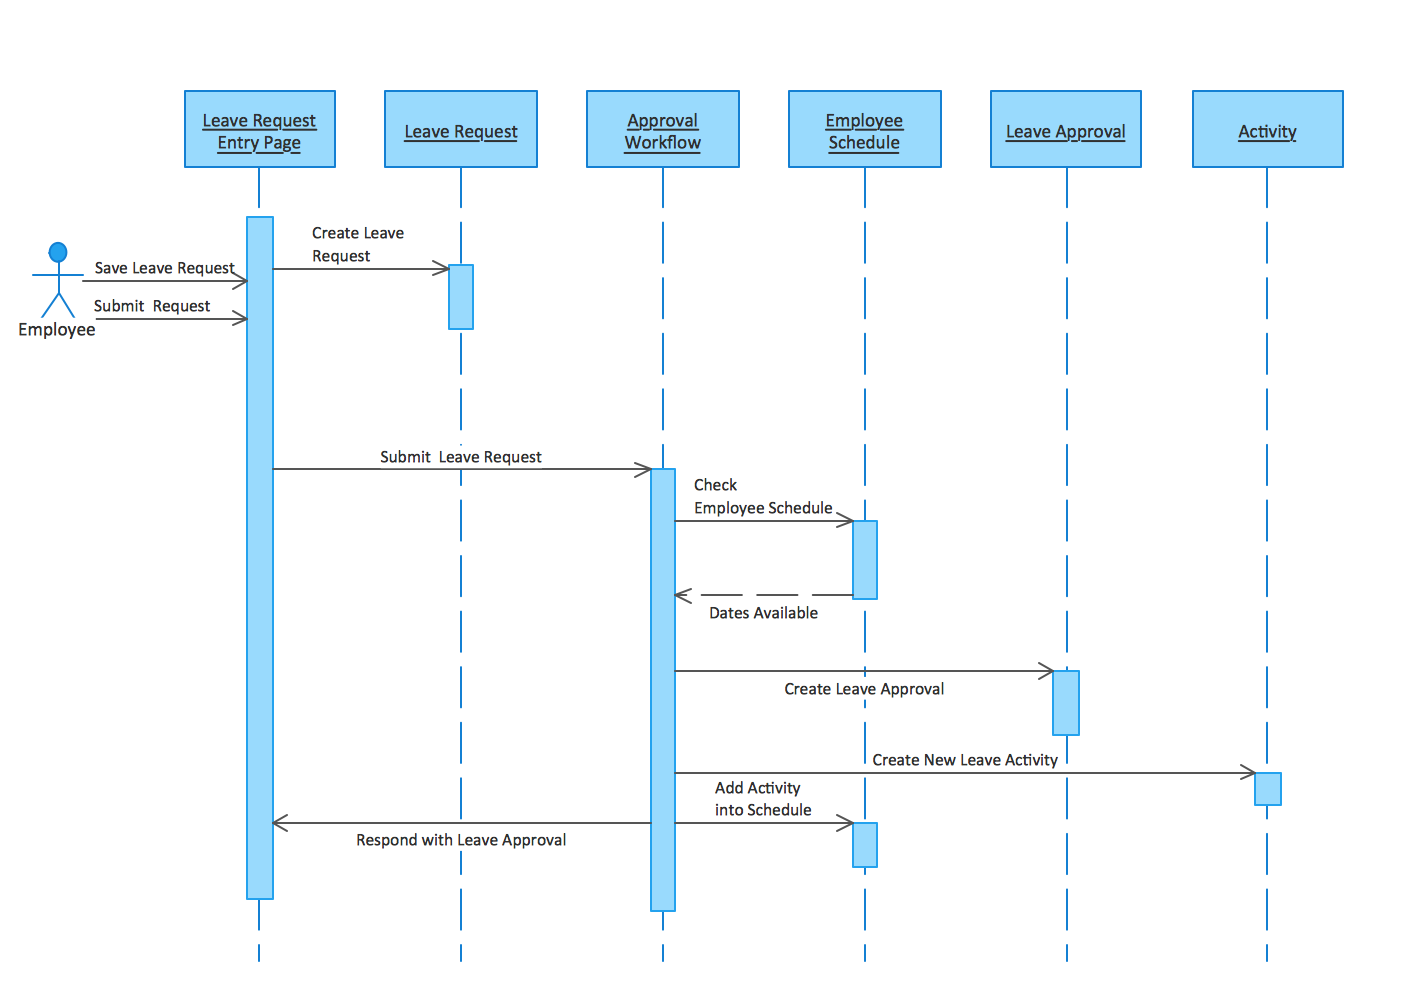 uml diagram software   conceptdraw for mac  amp  pc  create uml    uml sequence diagram  uml sequence diagram